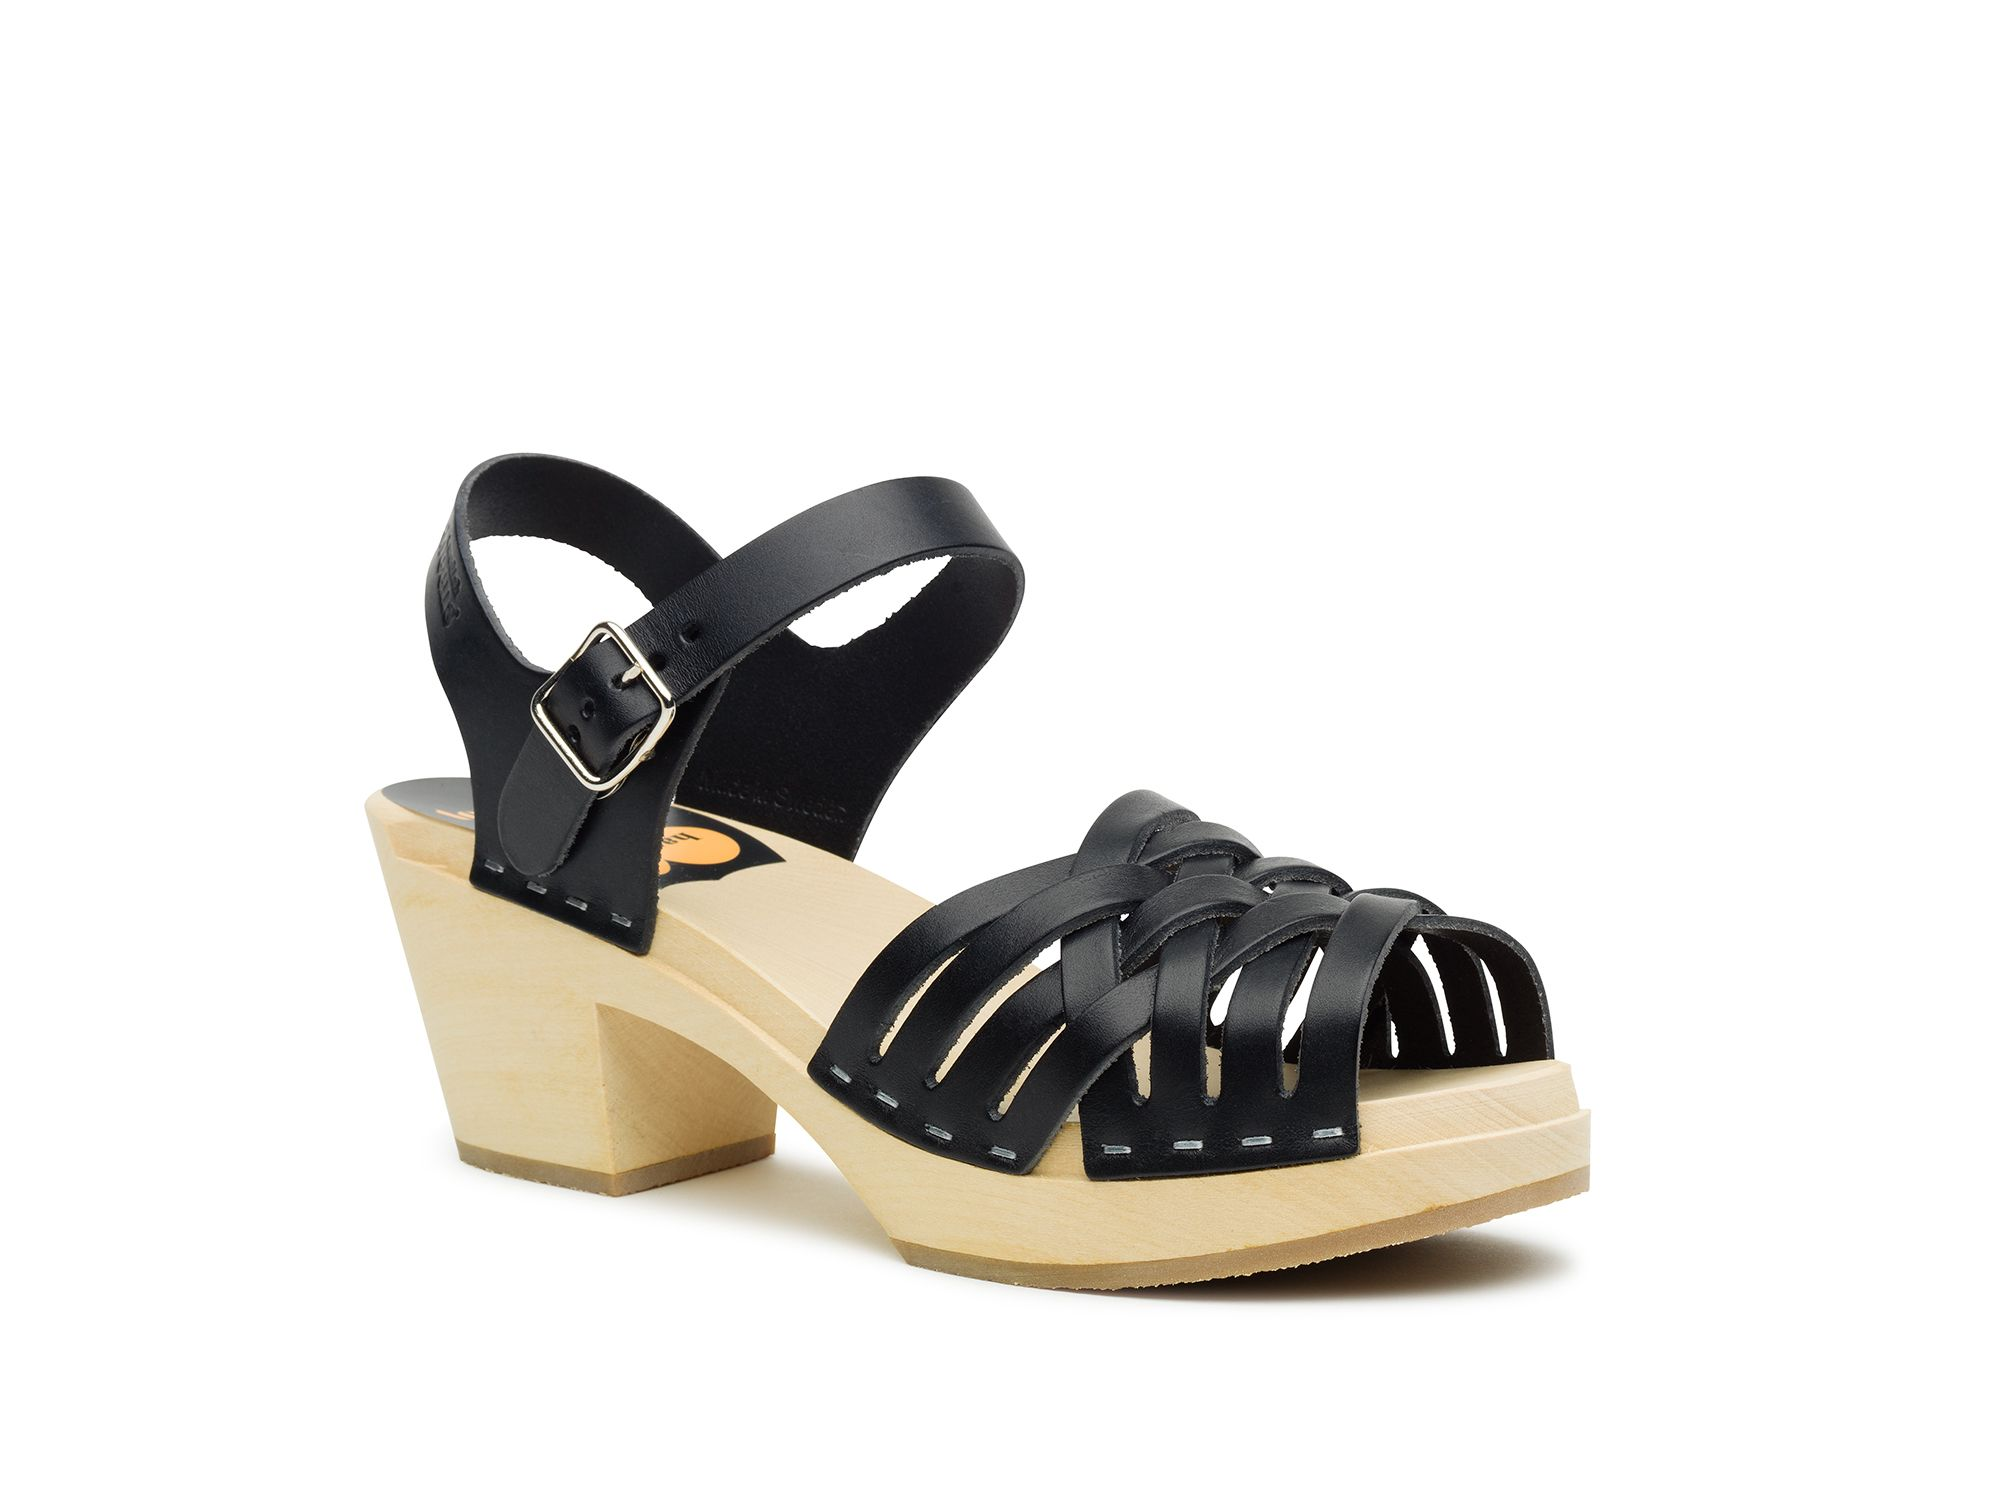 Swedish Hasbeens Braided high sandals, Black Multi